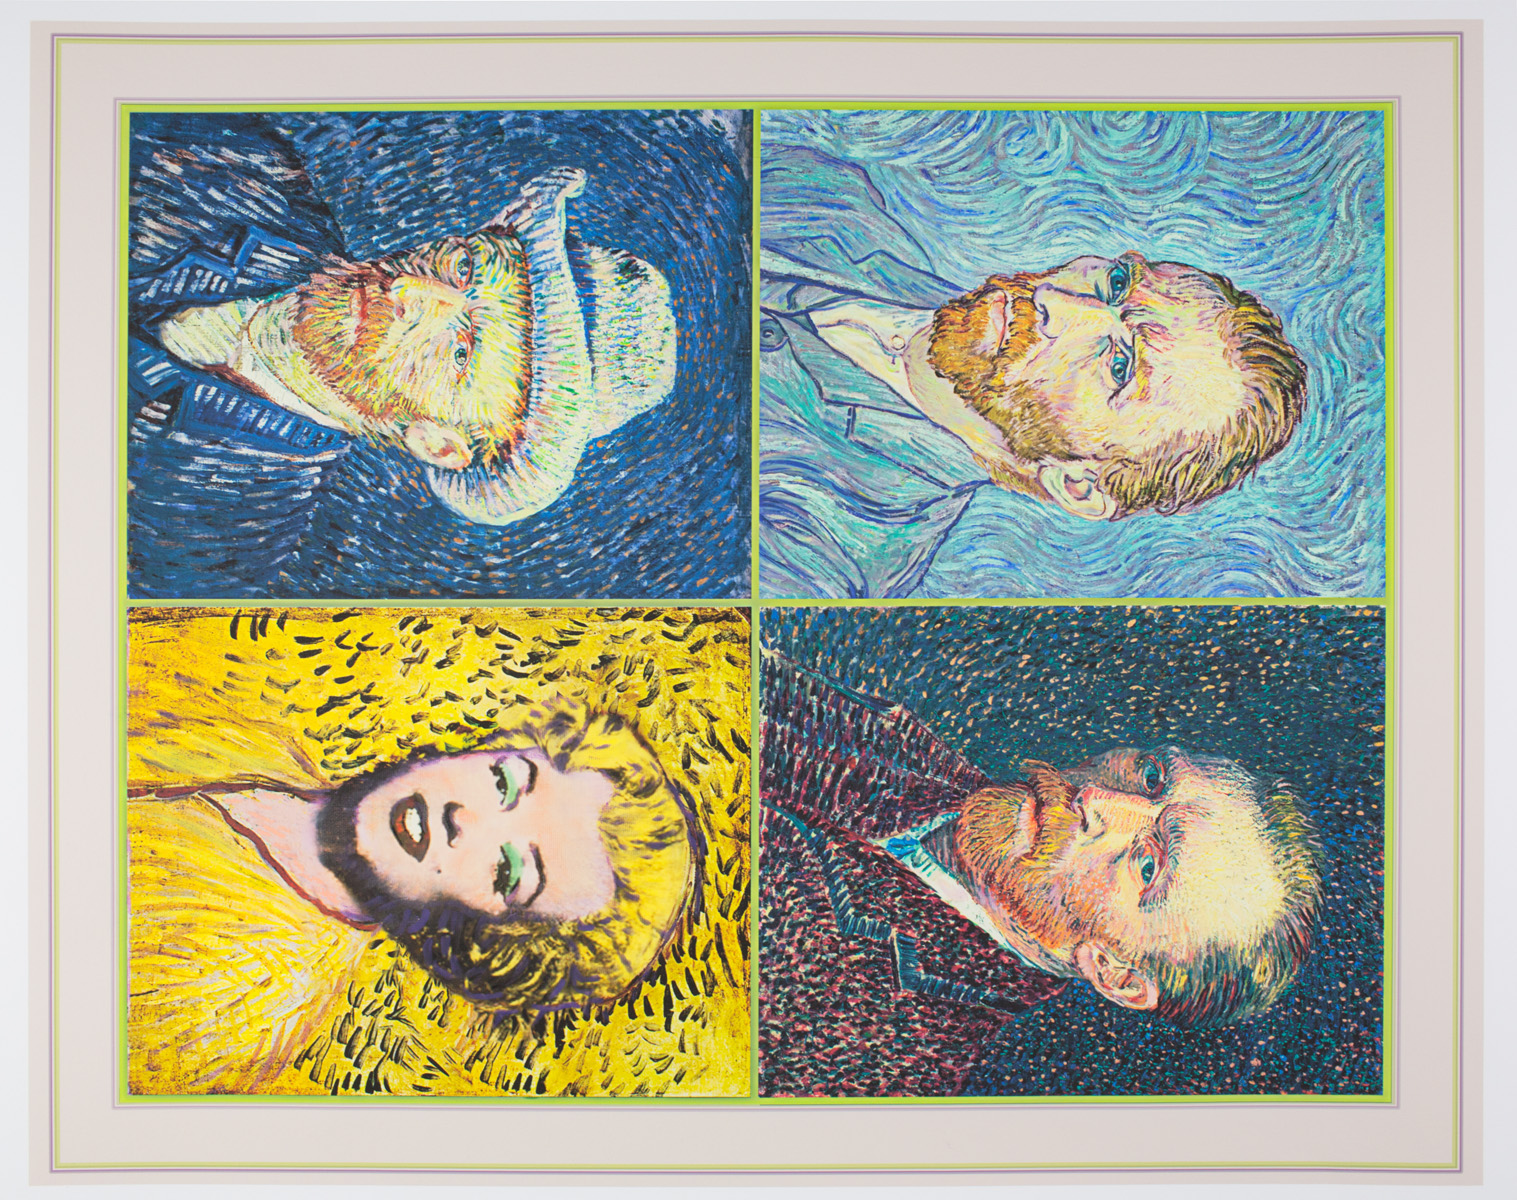 Vincent and Marilyn (1)